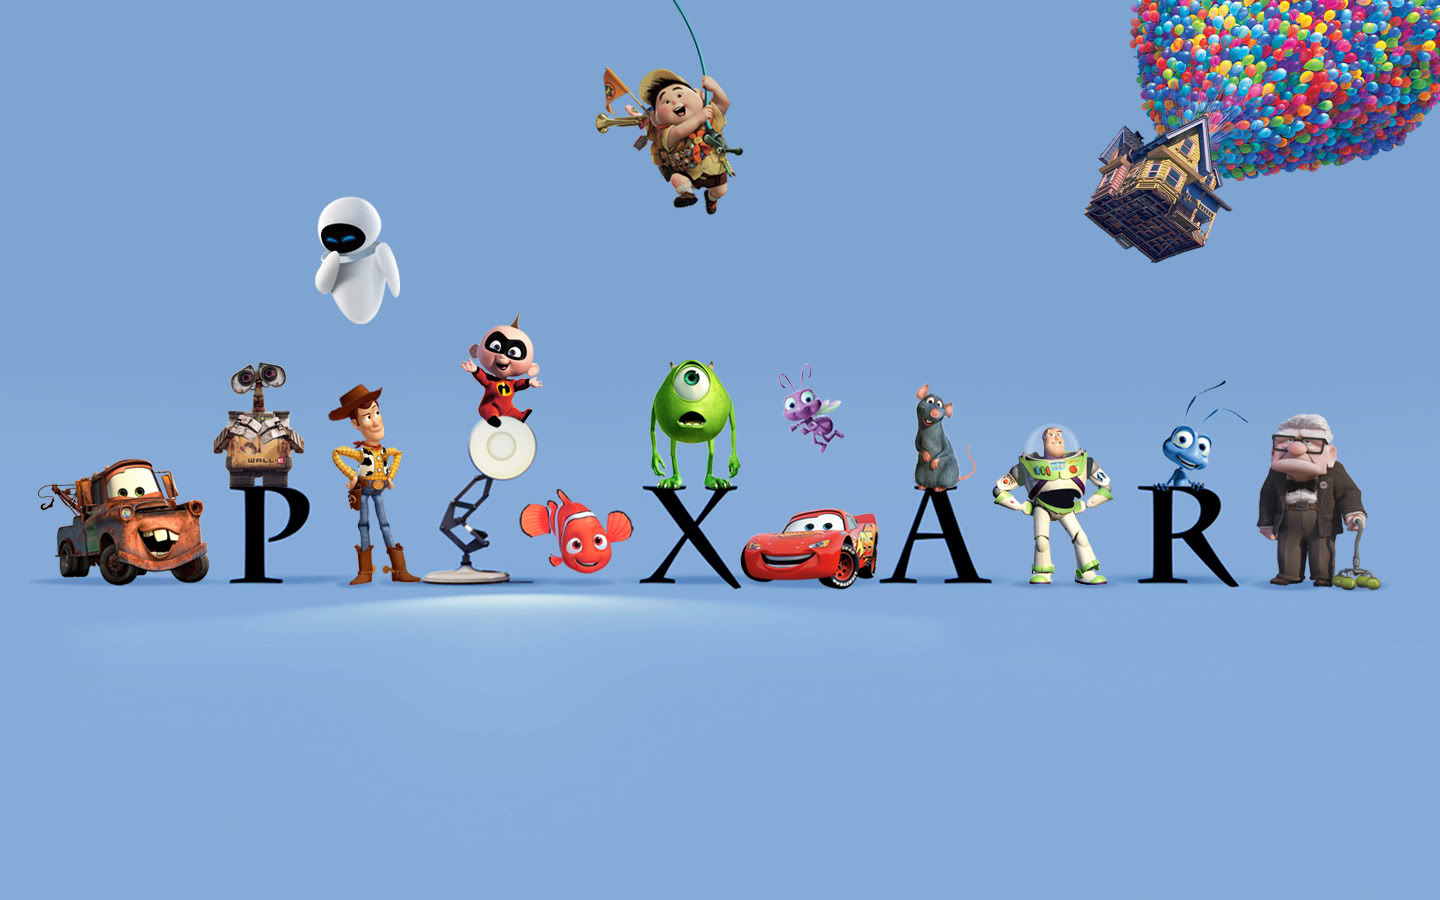 Pixar Animation Studios | Pixar Wiki | FANDOM powered by Wikia